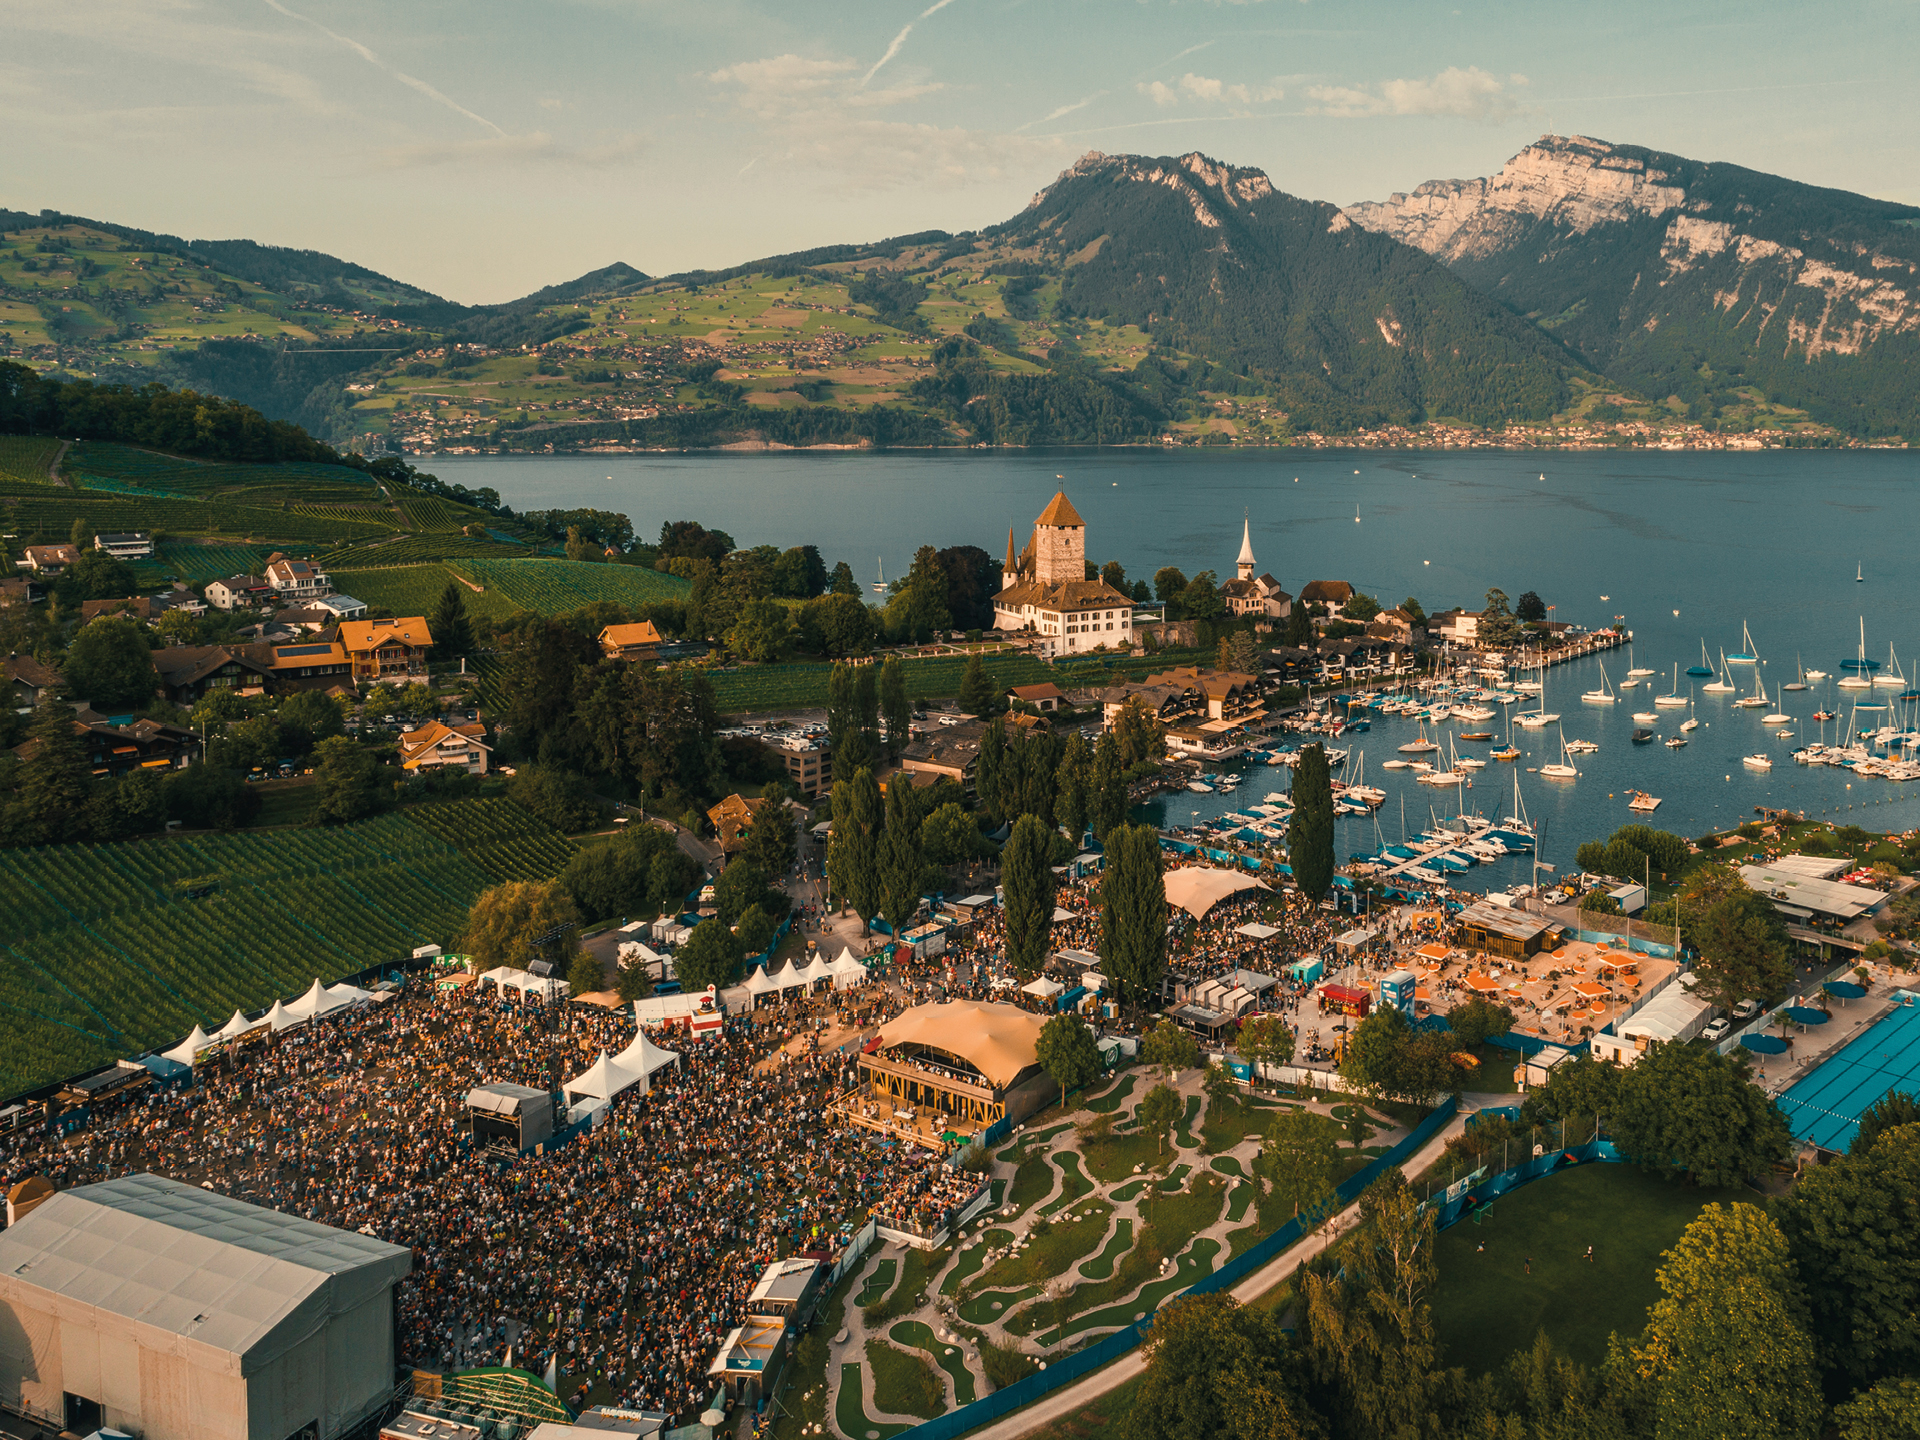 Spiez Bay and Lake Thun from above